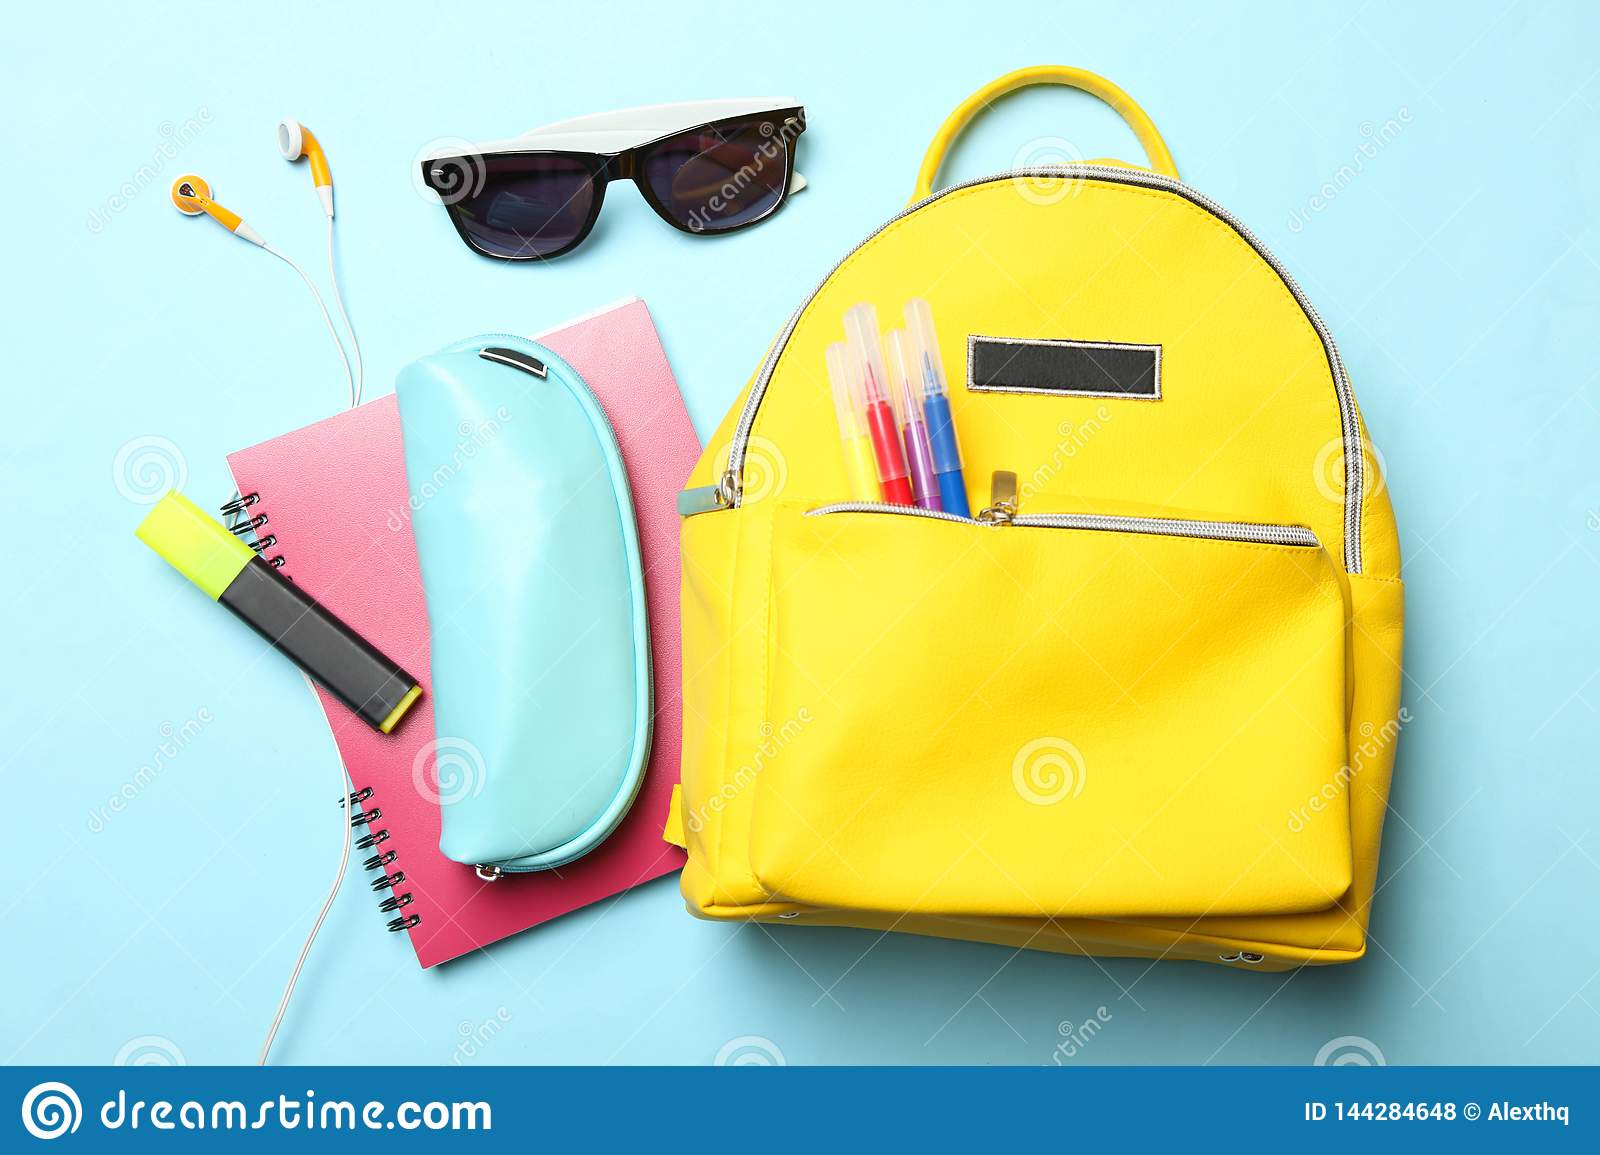 Yellow backpack with different school supplies and accessories